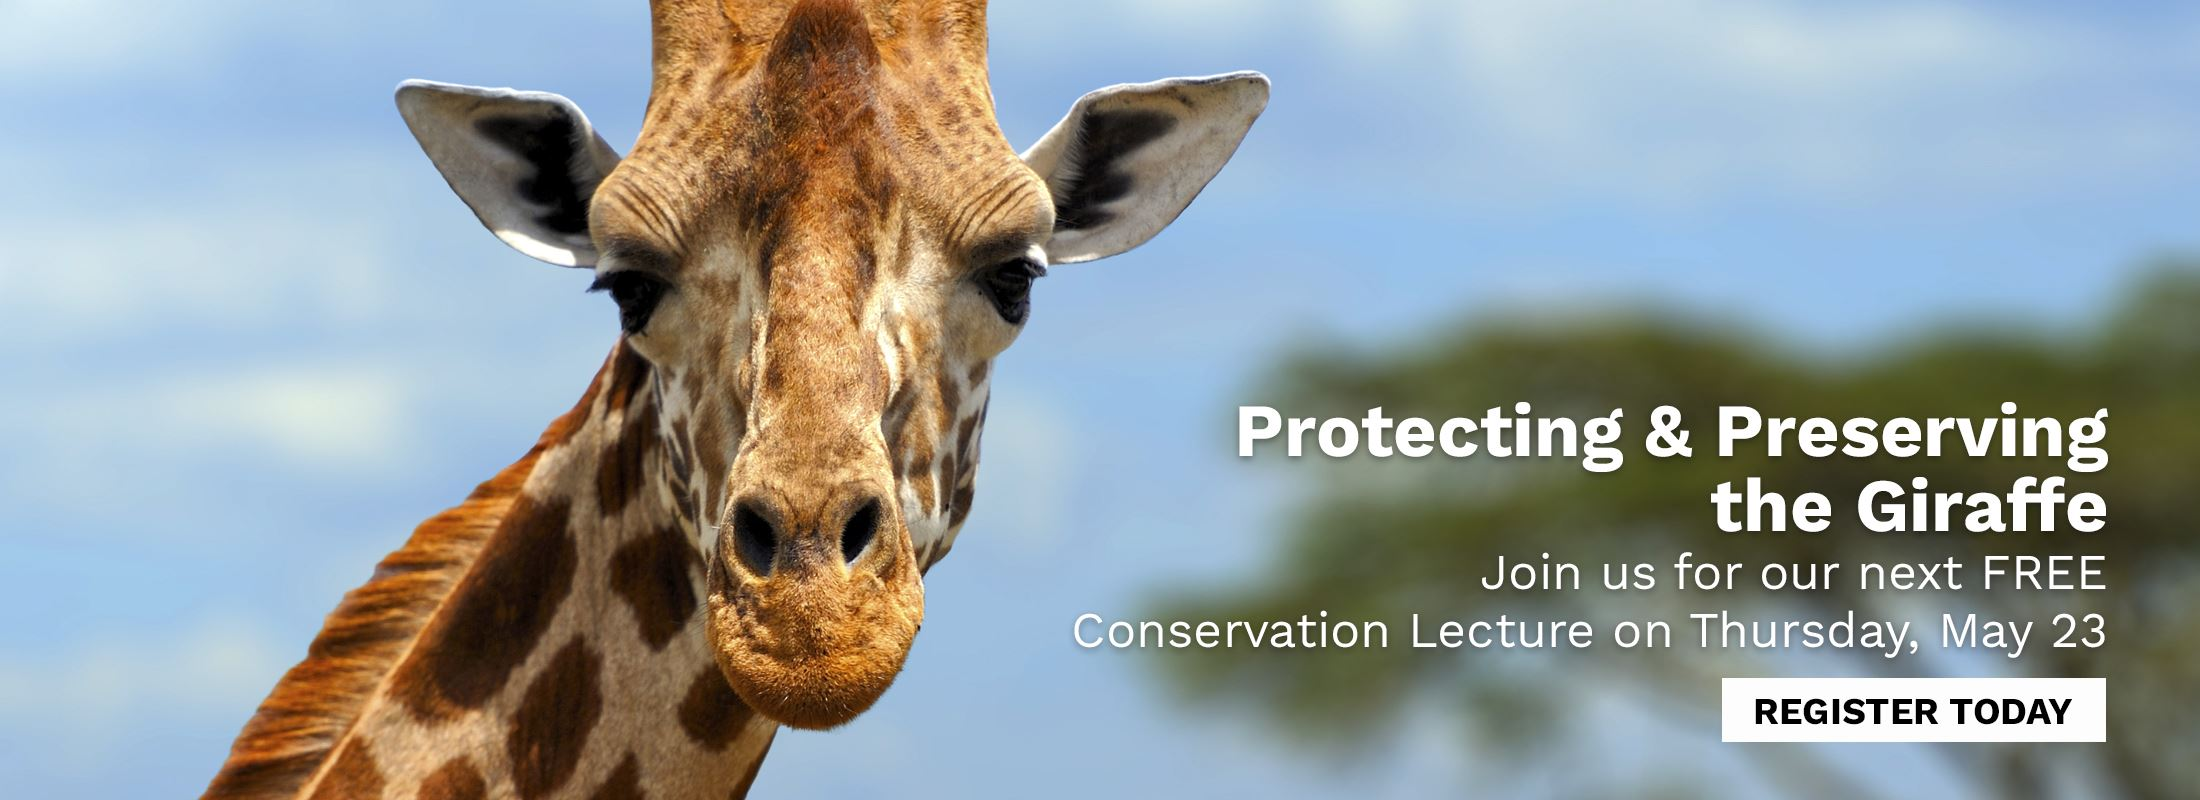 Photo of giraffe – Protecting and Preserving the Giraffe: Free Conservation Lecture Series on May 23.